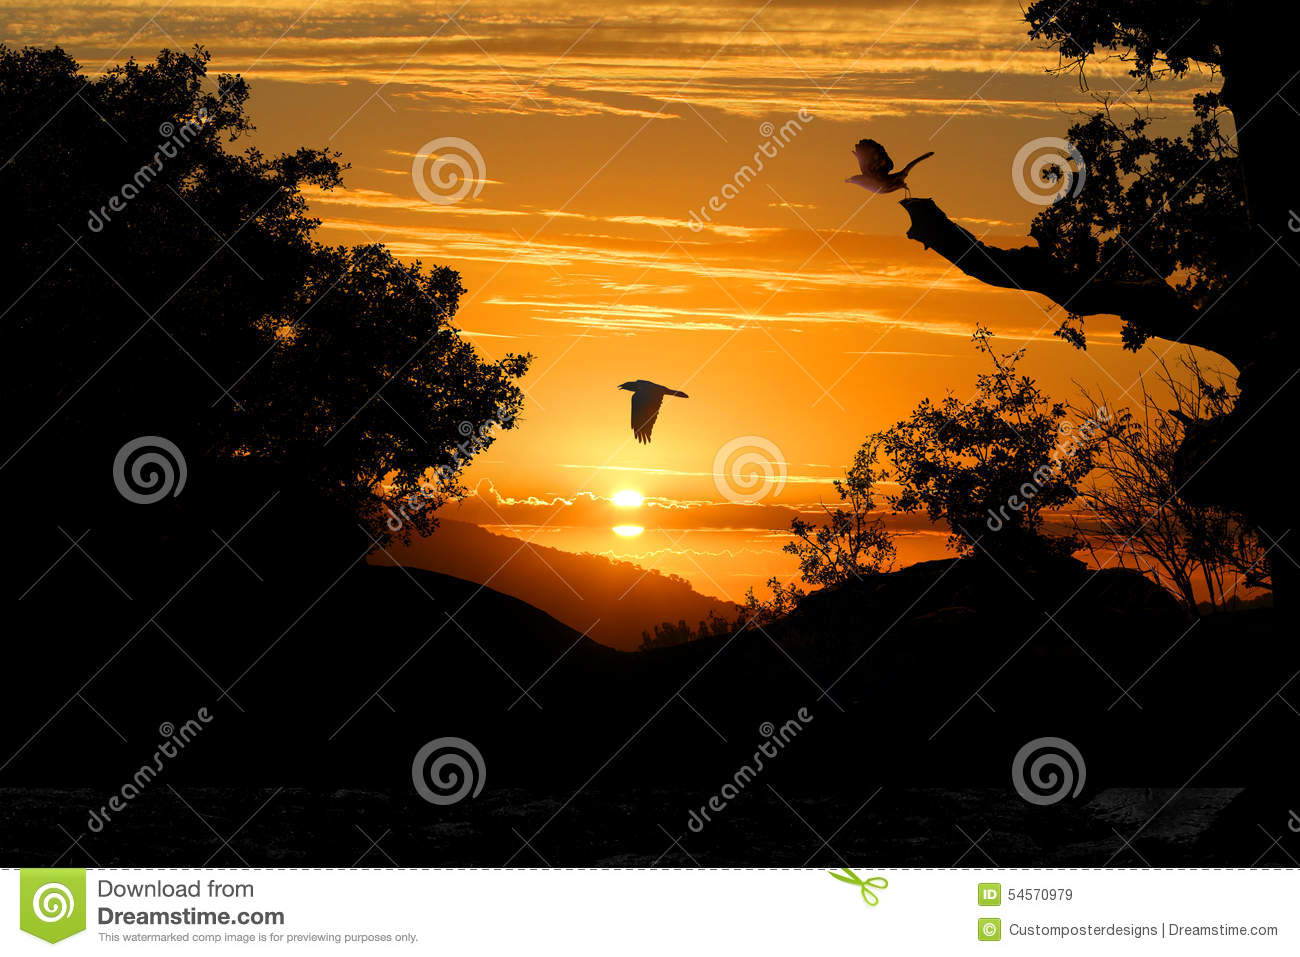 Download A Silhoutte Sunset Of Trees And Birds. Stock Image - Image of background, land: 54570979